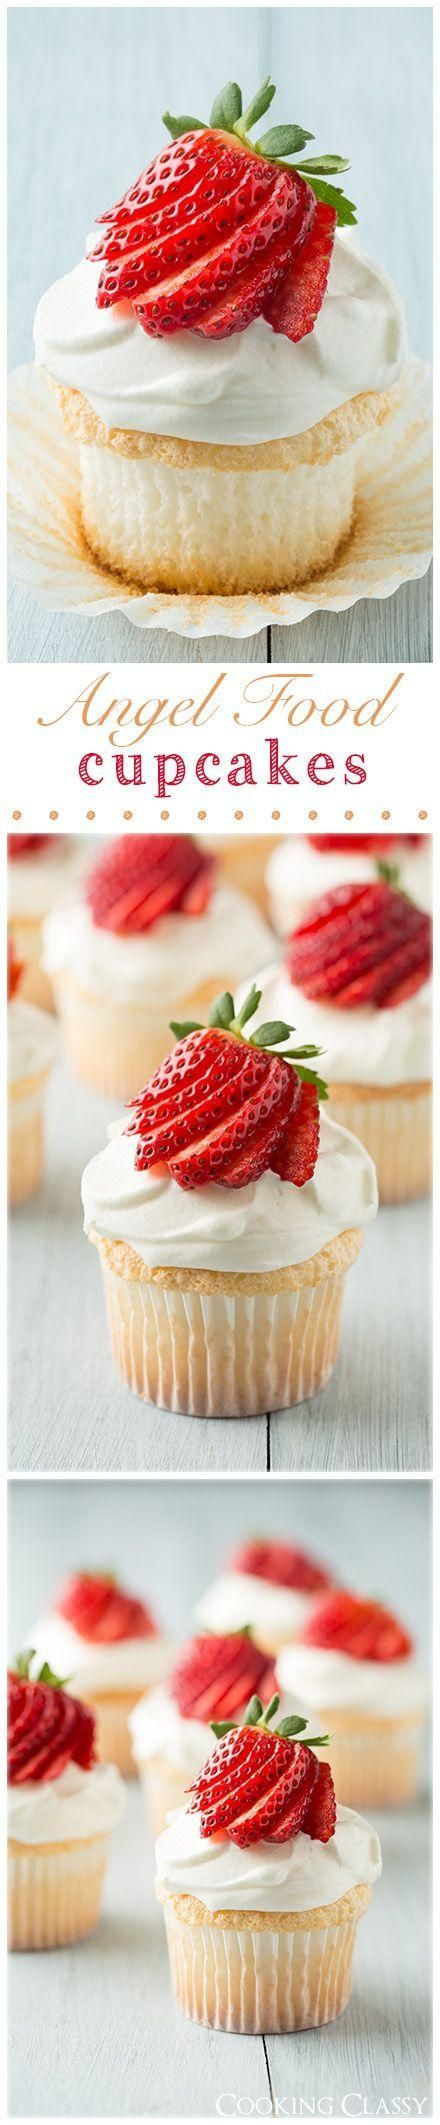 Angel Food Cupcakes(Summer Bake Goods)